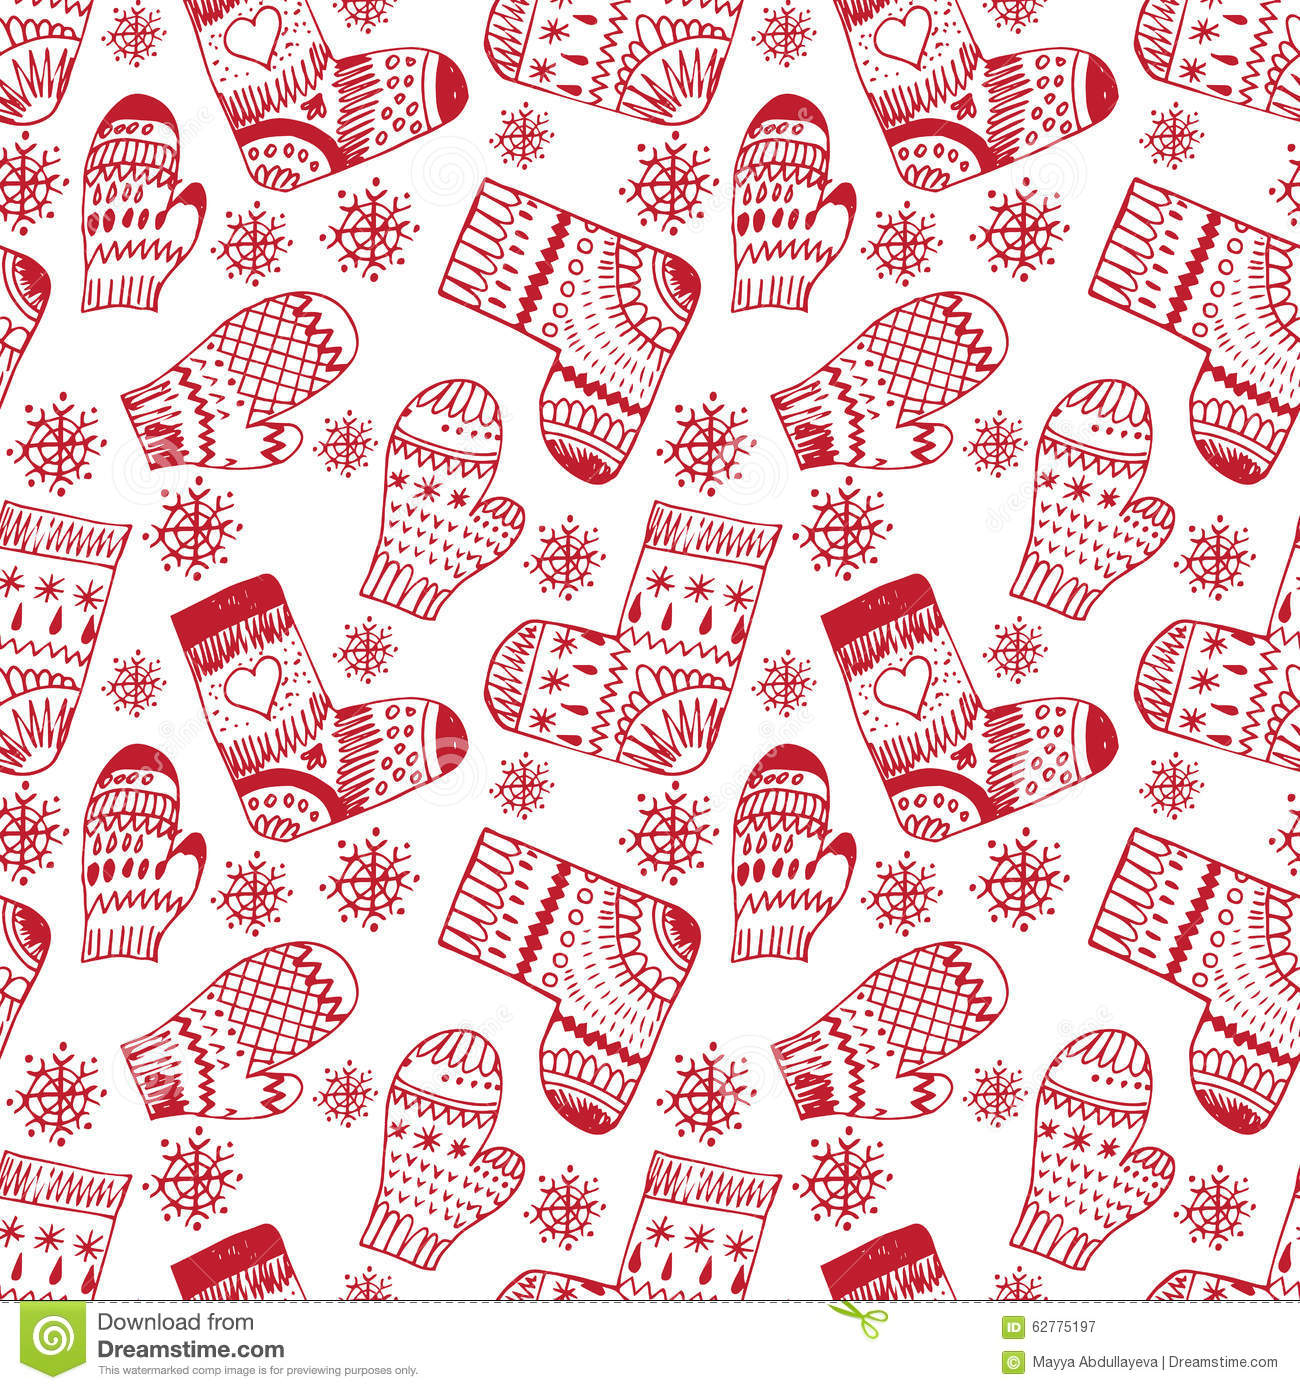 Winter Pattern With Mittens And Socks Stock Vector - Image: 62775197